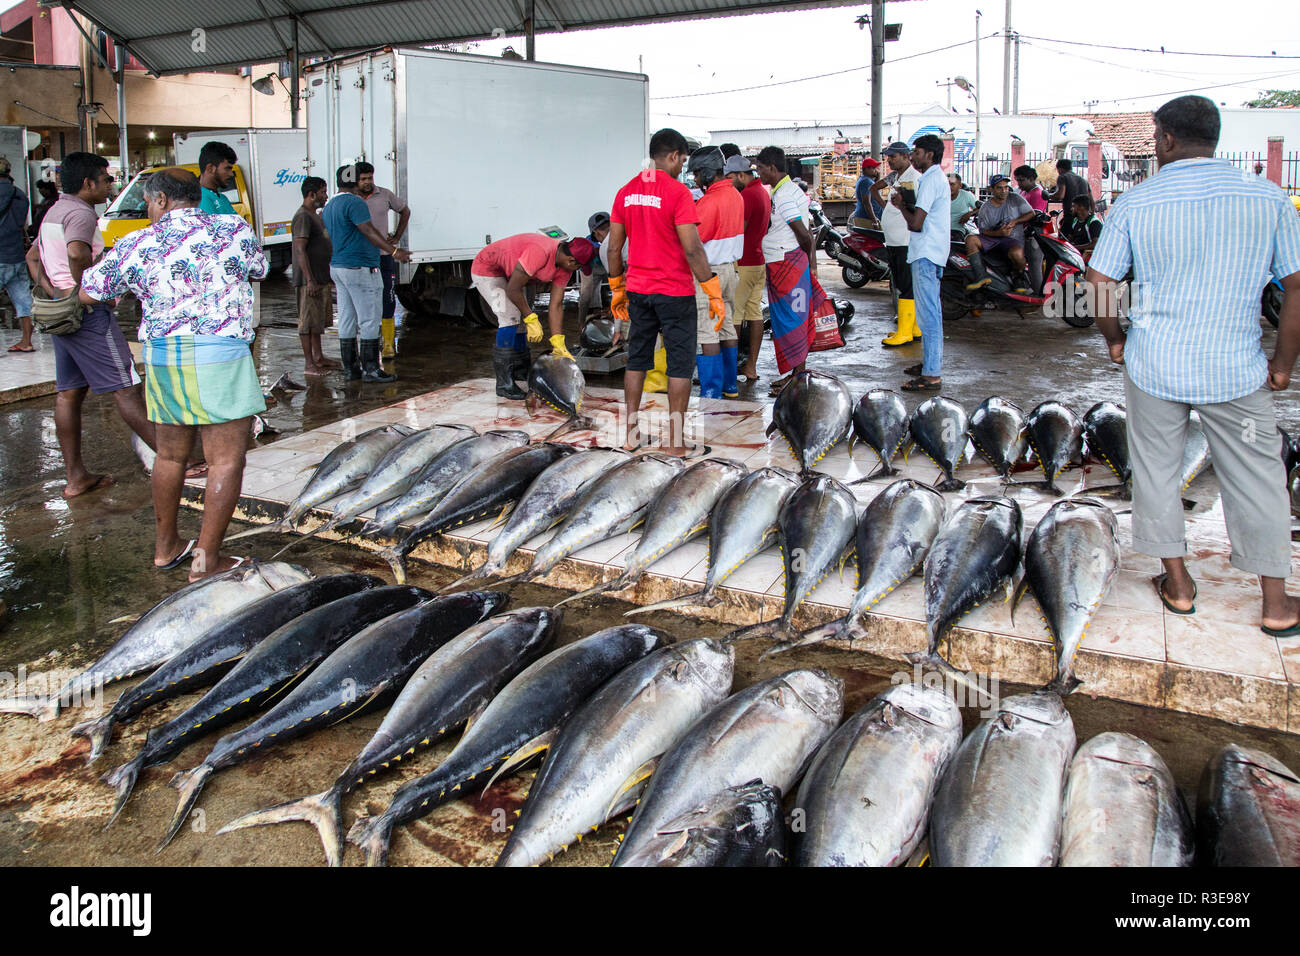 Fish Buyers Stock Photos & Fish Buyers Stock Images - Alamy